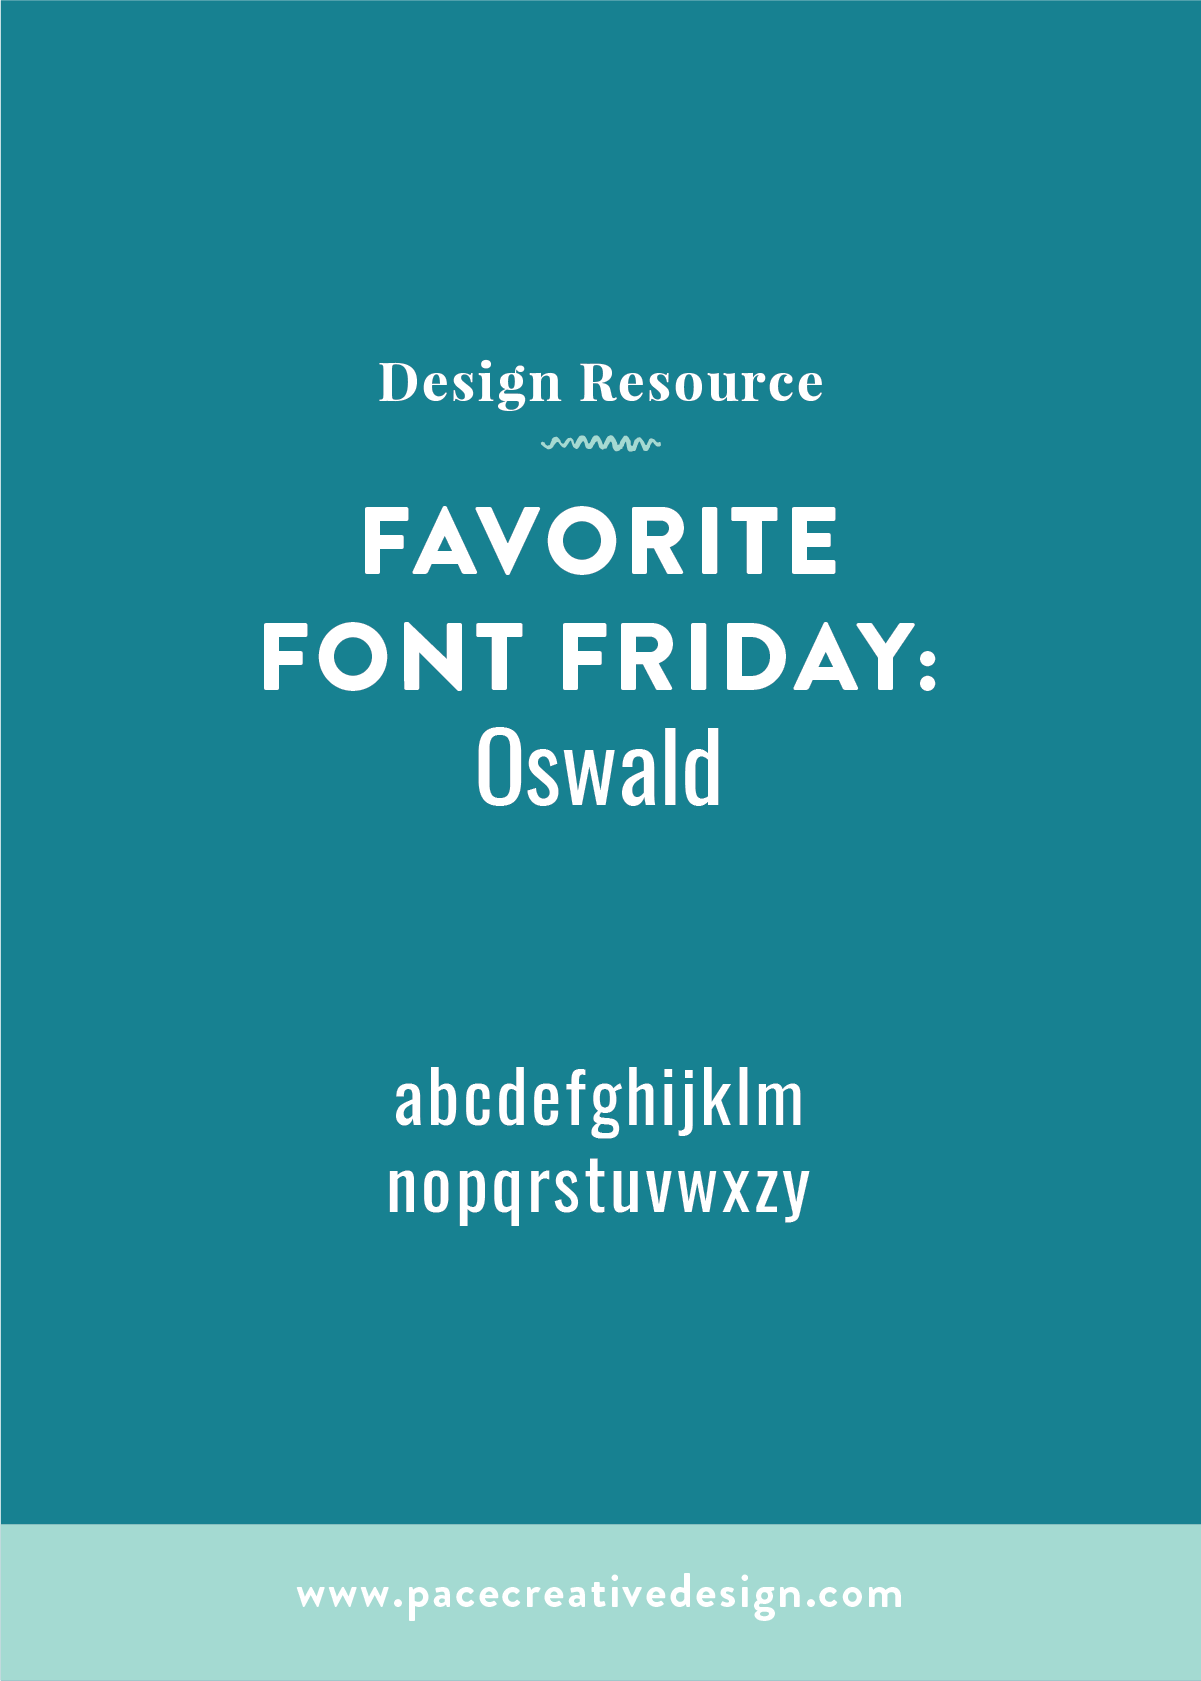 Favorite Font Friday No. 1 – Oswald | Pace Creative Design Studio